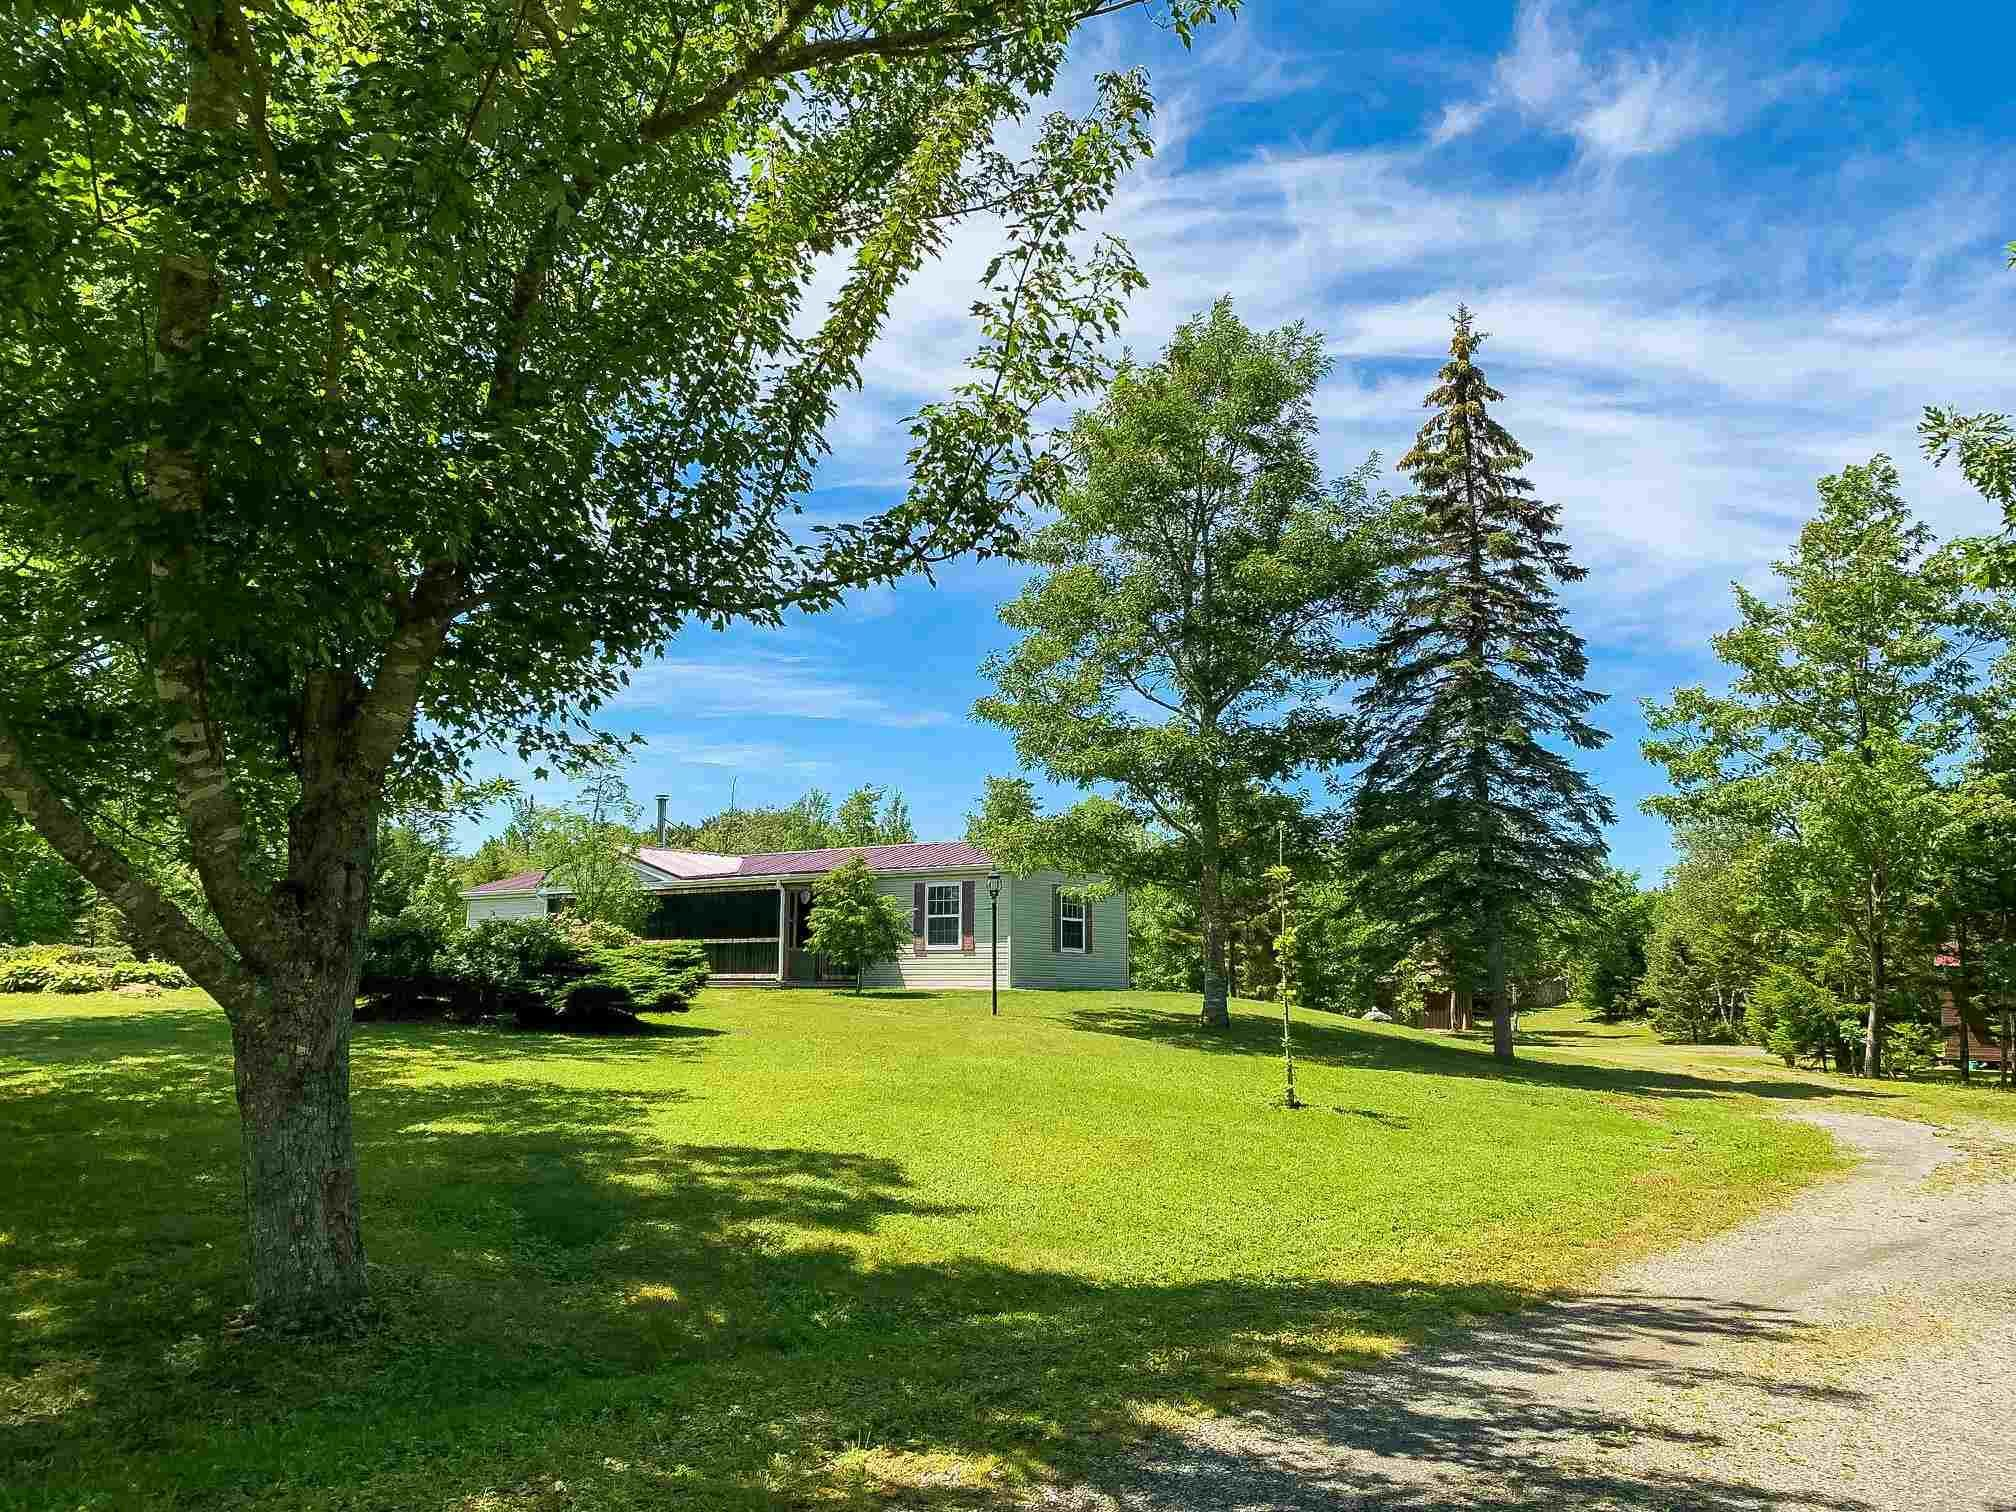 Main Photo: 782 Waterloo Road in Waterloo: 405-Lunenburg County Residential for sale (South Shore)  : MLS®# 202117282